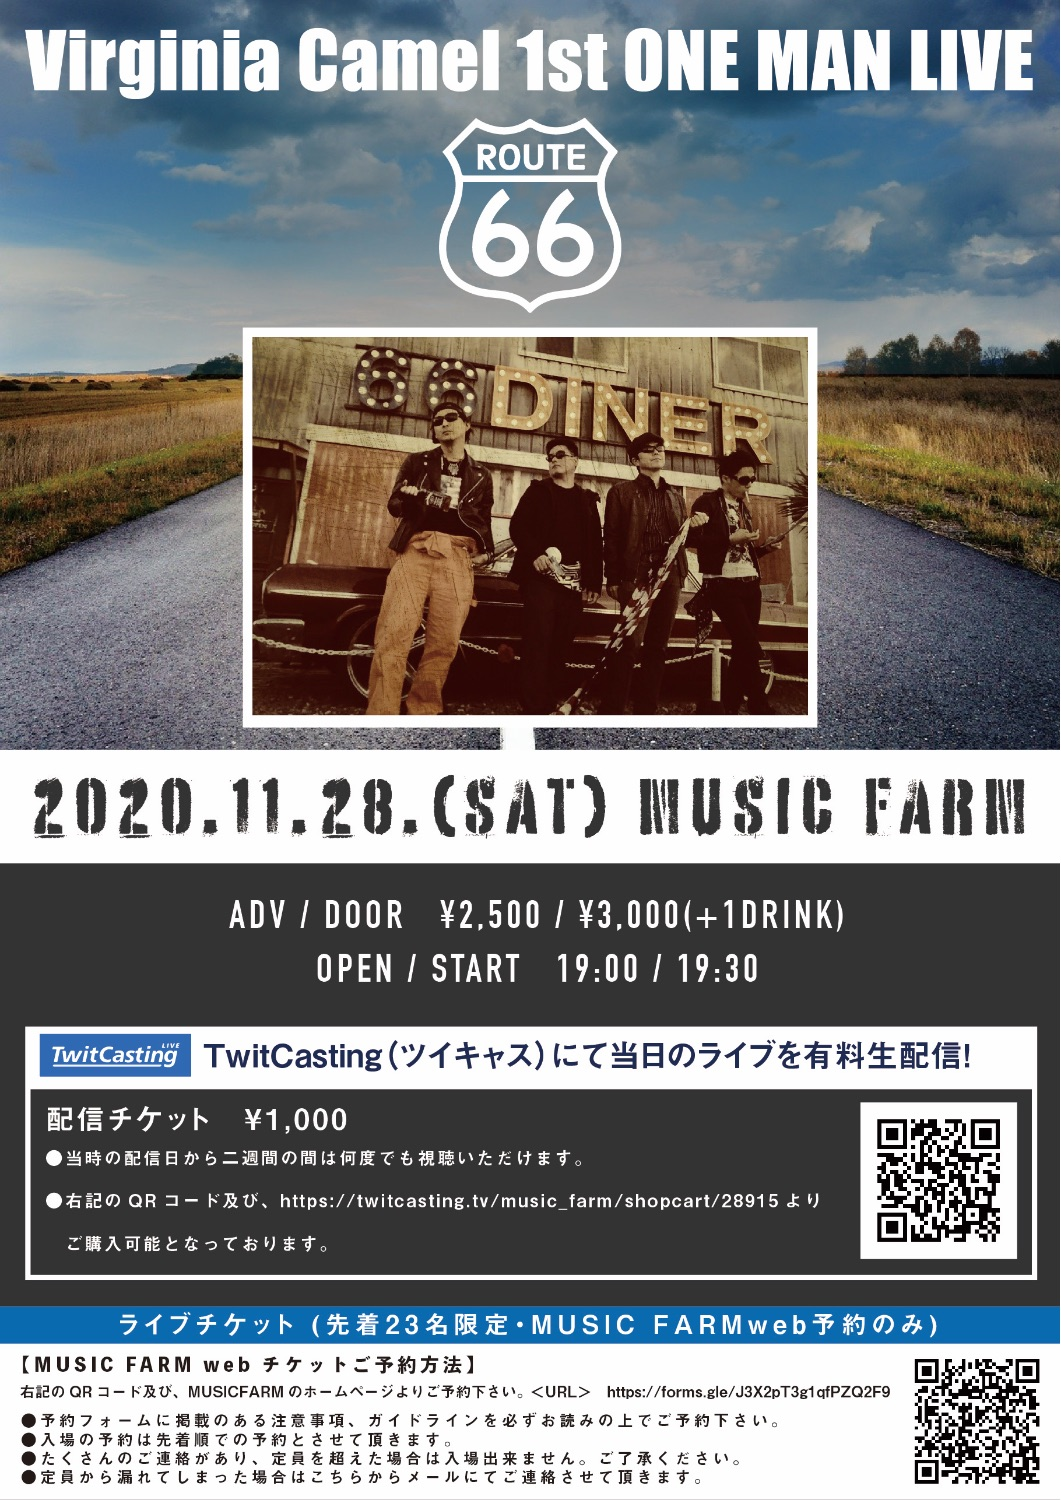 Virginia Camel 1st ONE MAN LIVE【ROUTE 66】